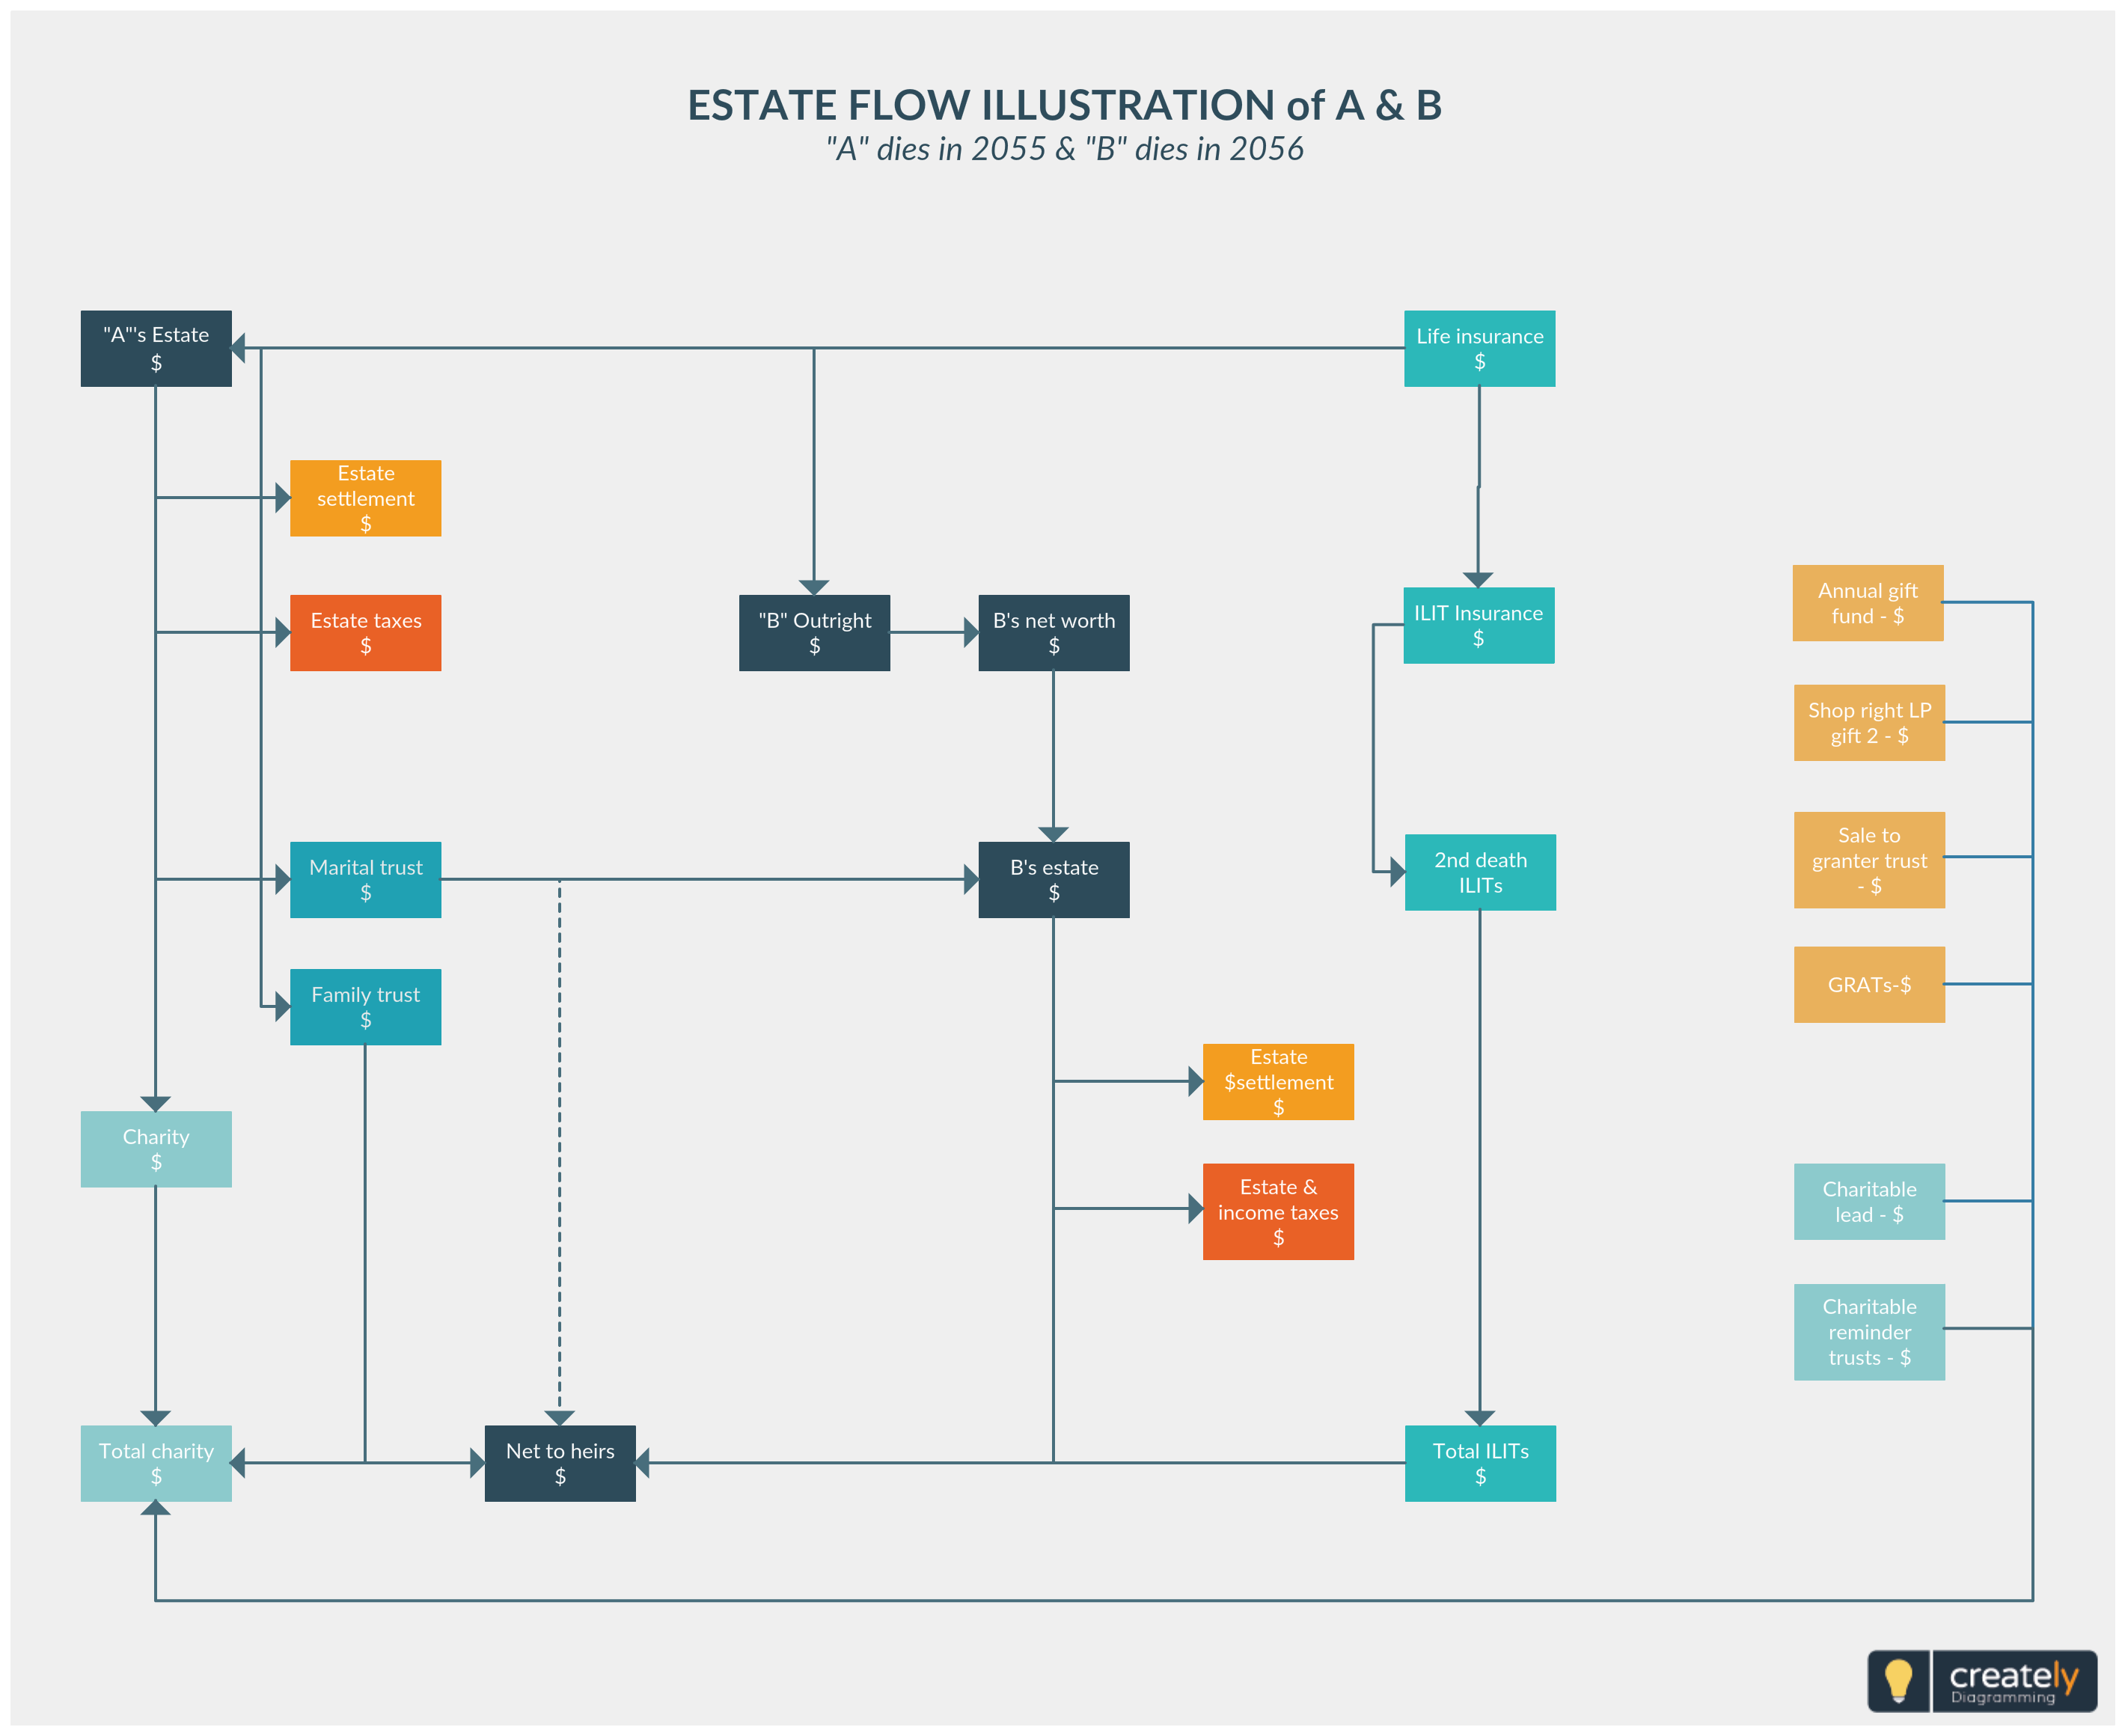 Estate Planning Flowchart Is The Step By Process Of Effectively Protection Preservation And Increasing An Individual